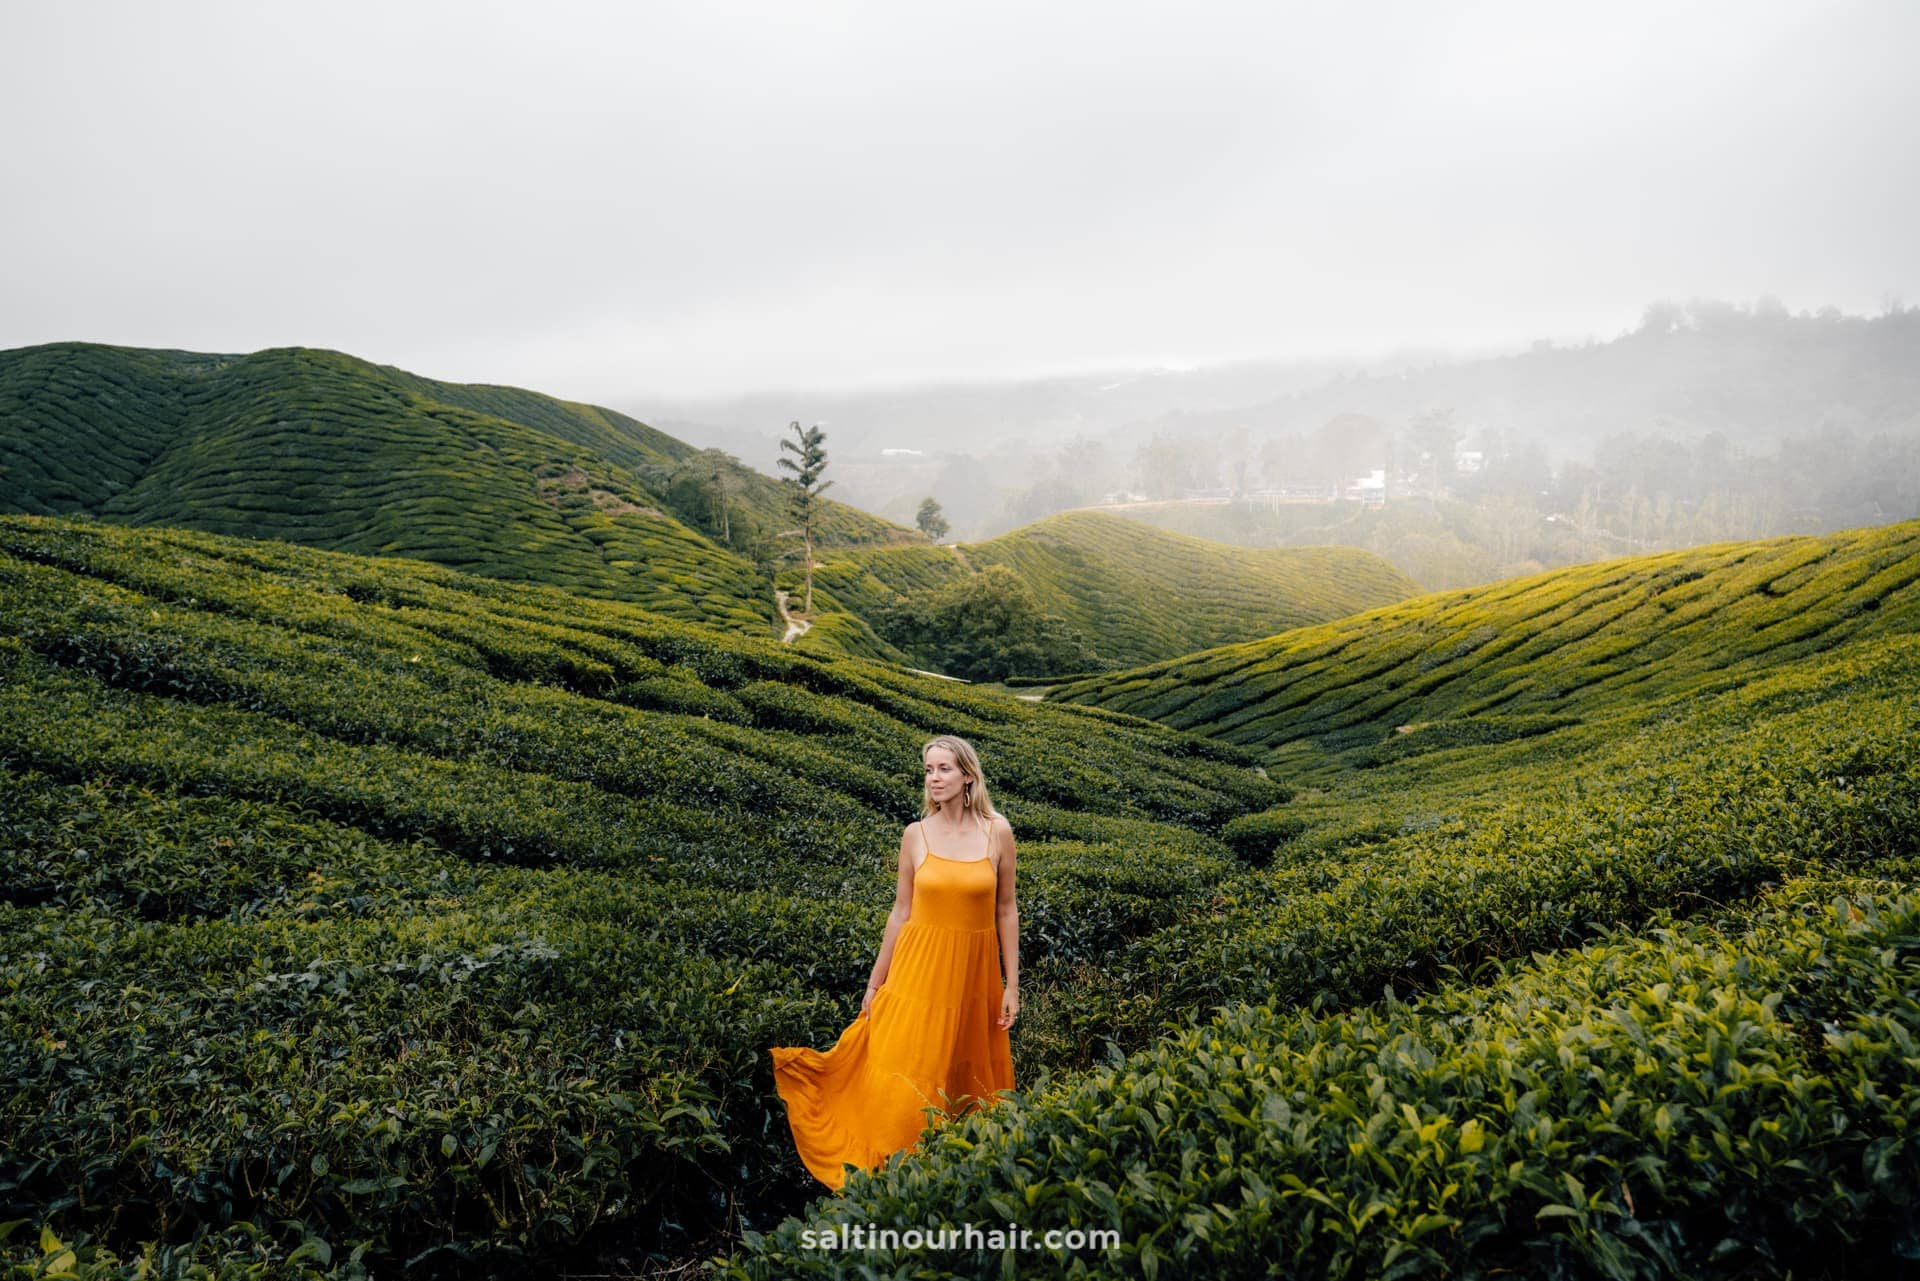 malaysia cameron highlands salt in our hair